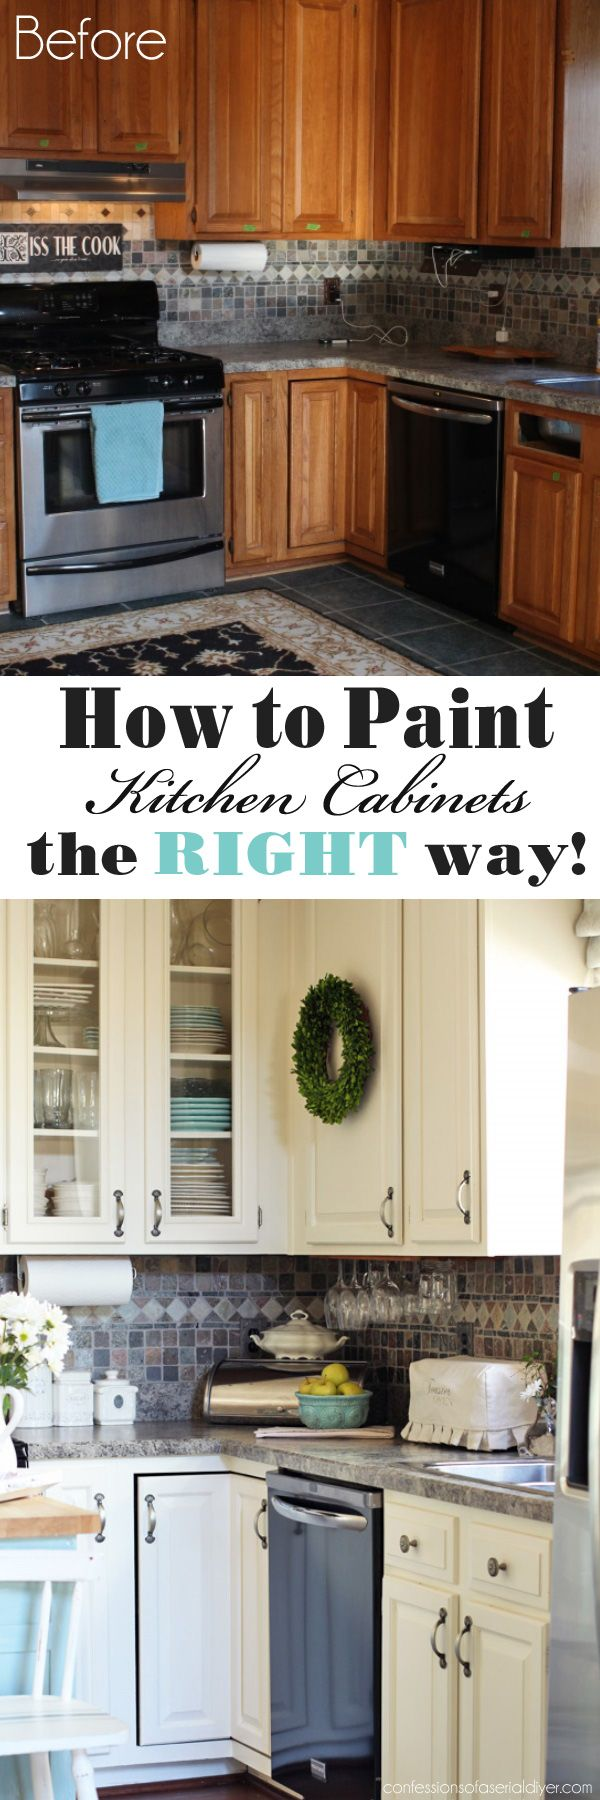 how to paint kitchen cabinets the right way from confessions of a serial do it - Pinterest New Home Ideas